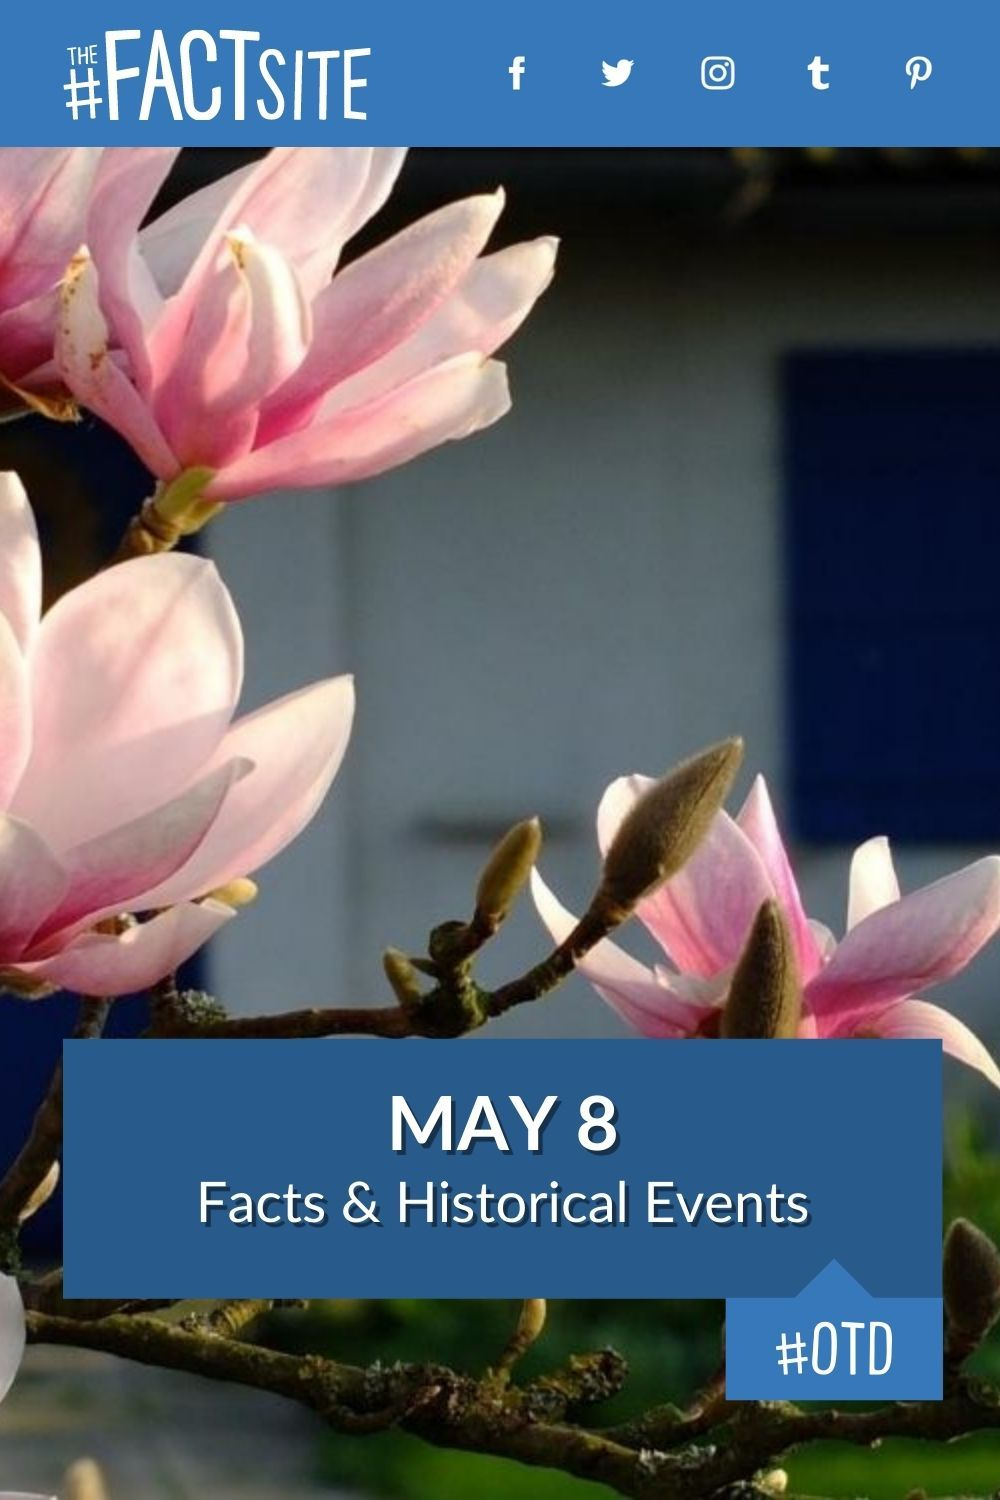 Facts & Historic Events That Happened on May 8